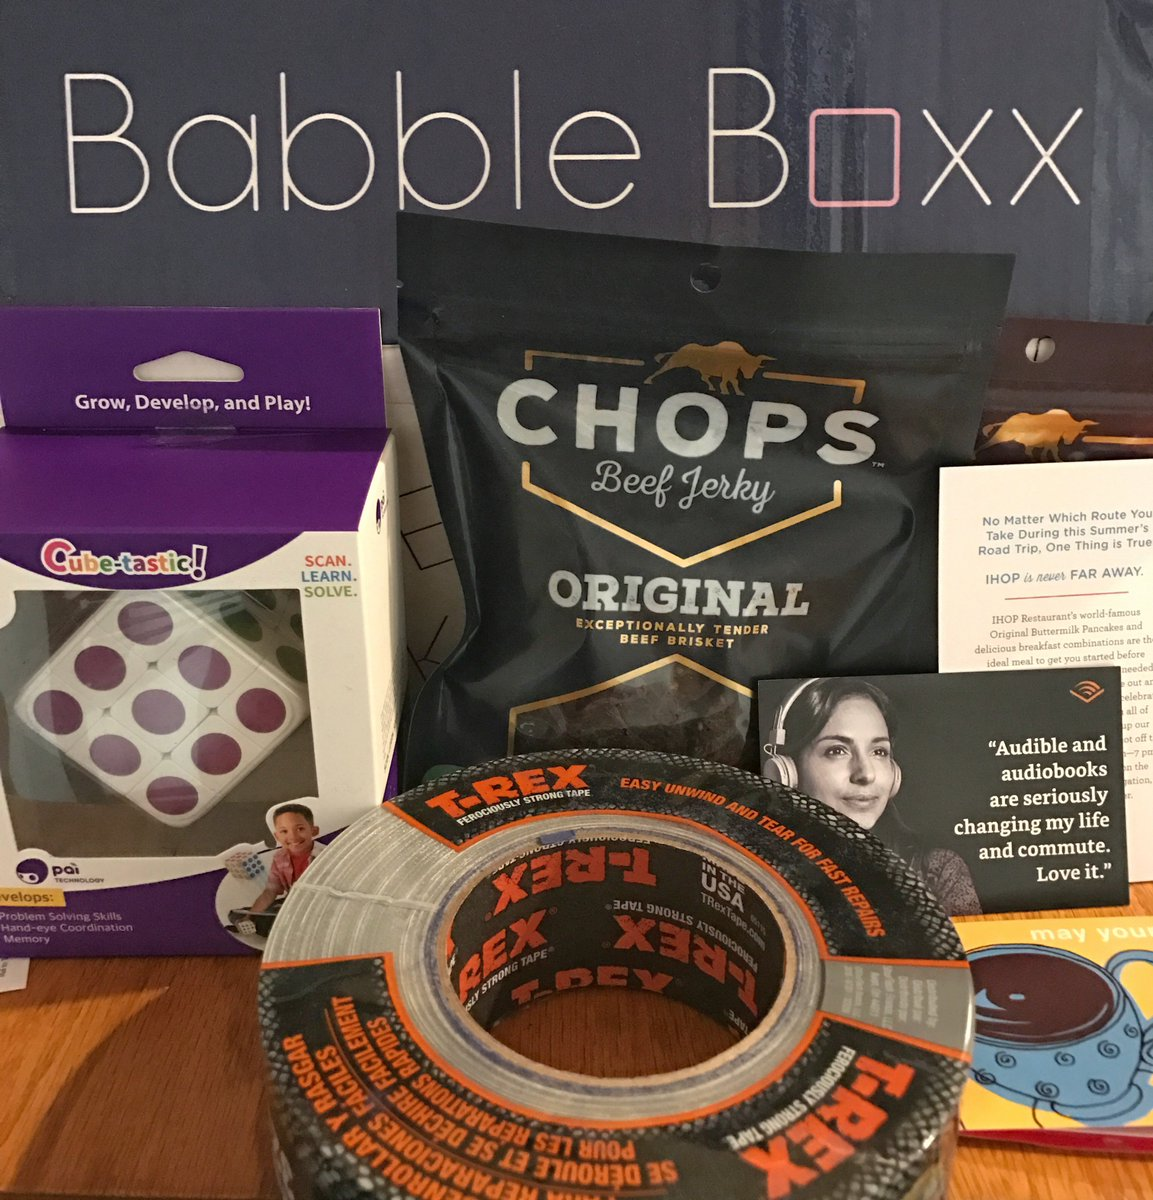 What do audiobooks, snacks, pancakes, rubikscube, and duct tape have in common? #Ontheblog today  https:// cookwith5kids.com/2017/07/road-t rip-entertainment/ &nbsp; …  #ad #RoadtripBboxx<br>http://pic.twitter.com/z3g0G9ix3I